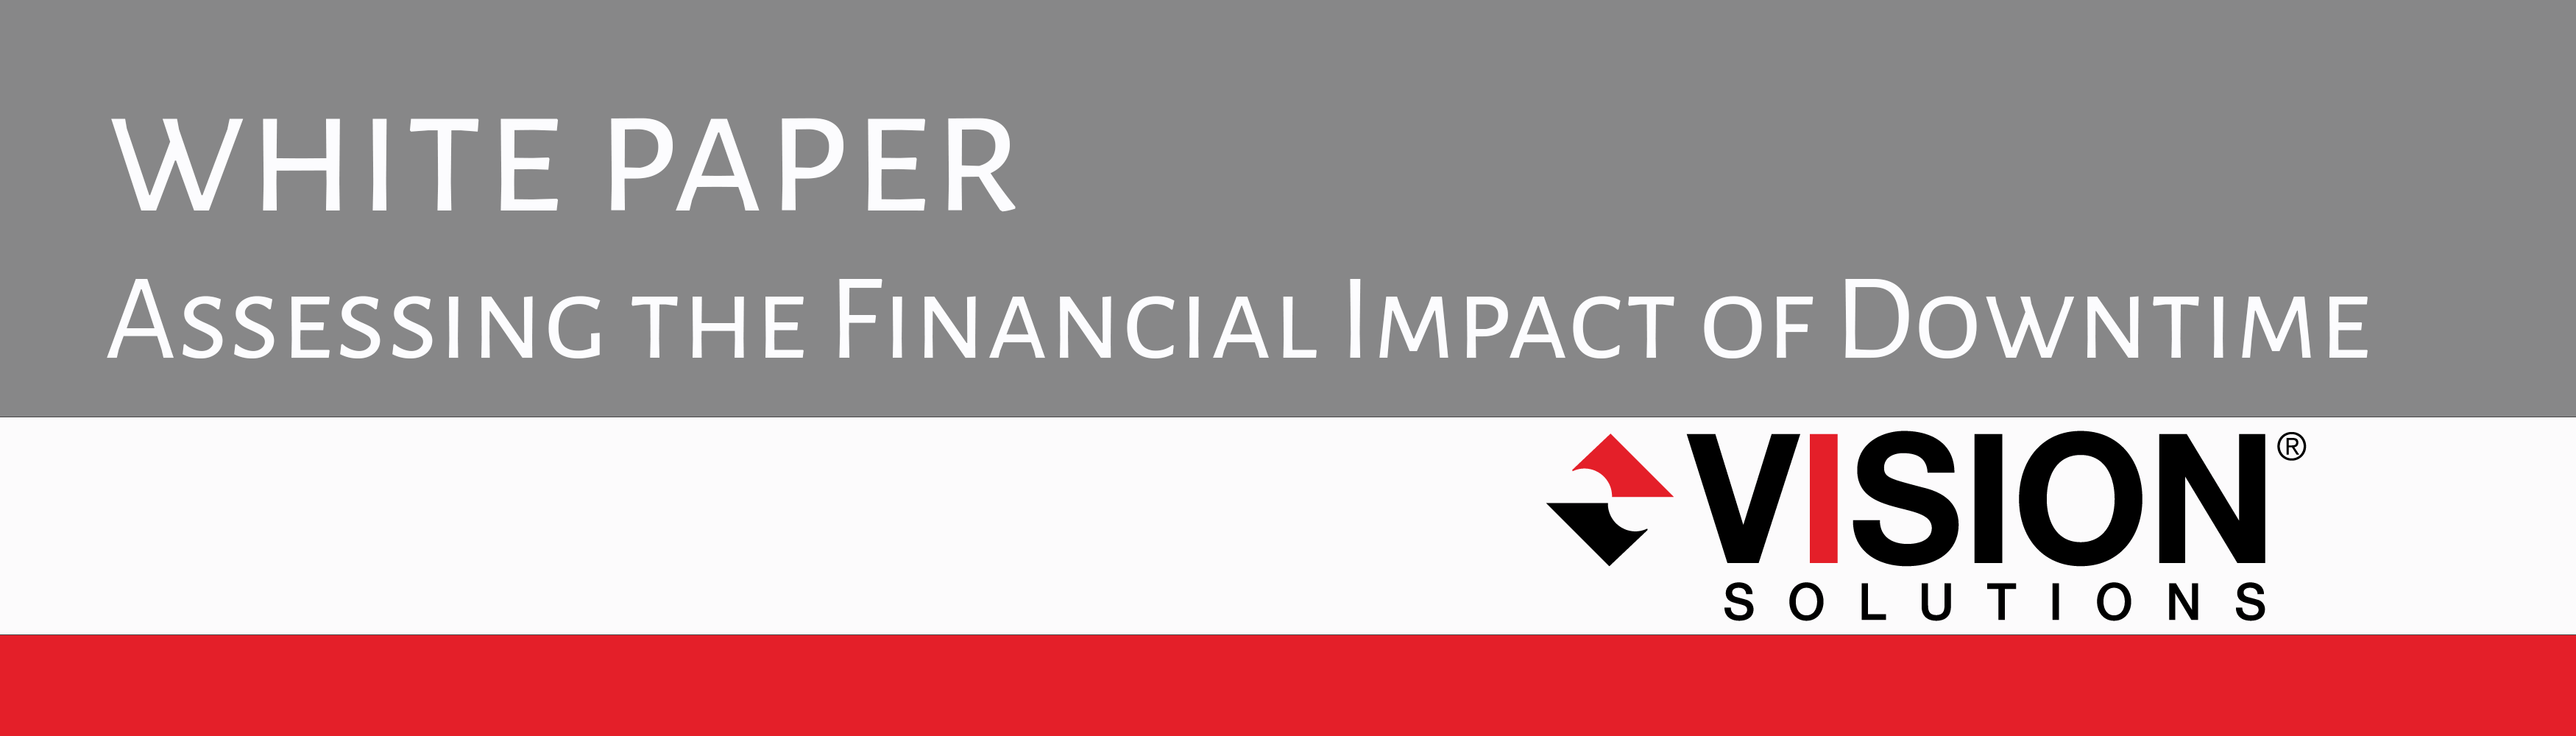 White-Paper_Assessing the Financial Impact of Downtime